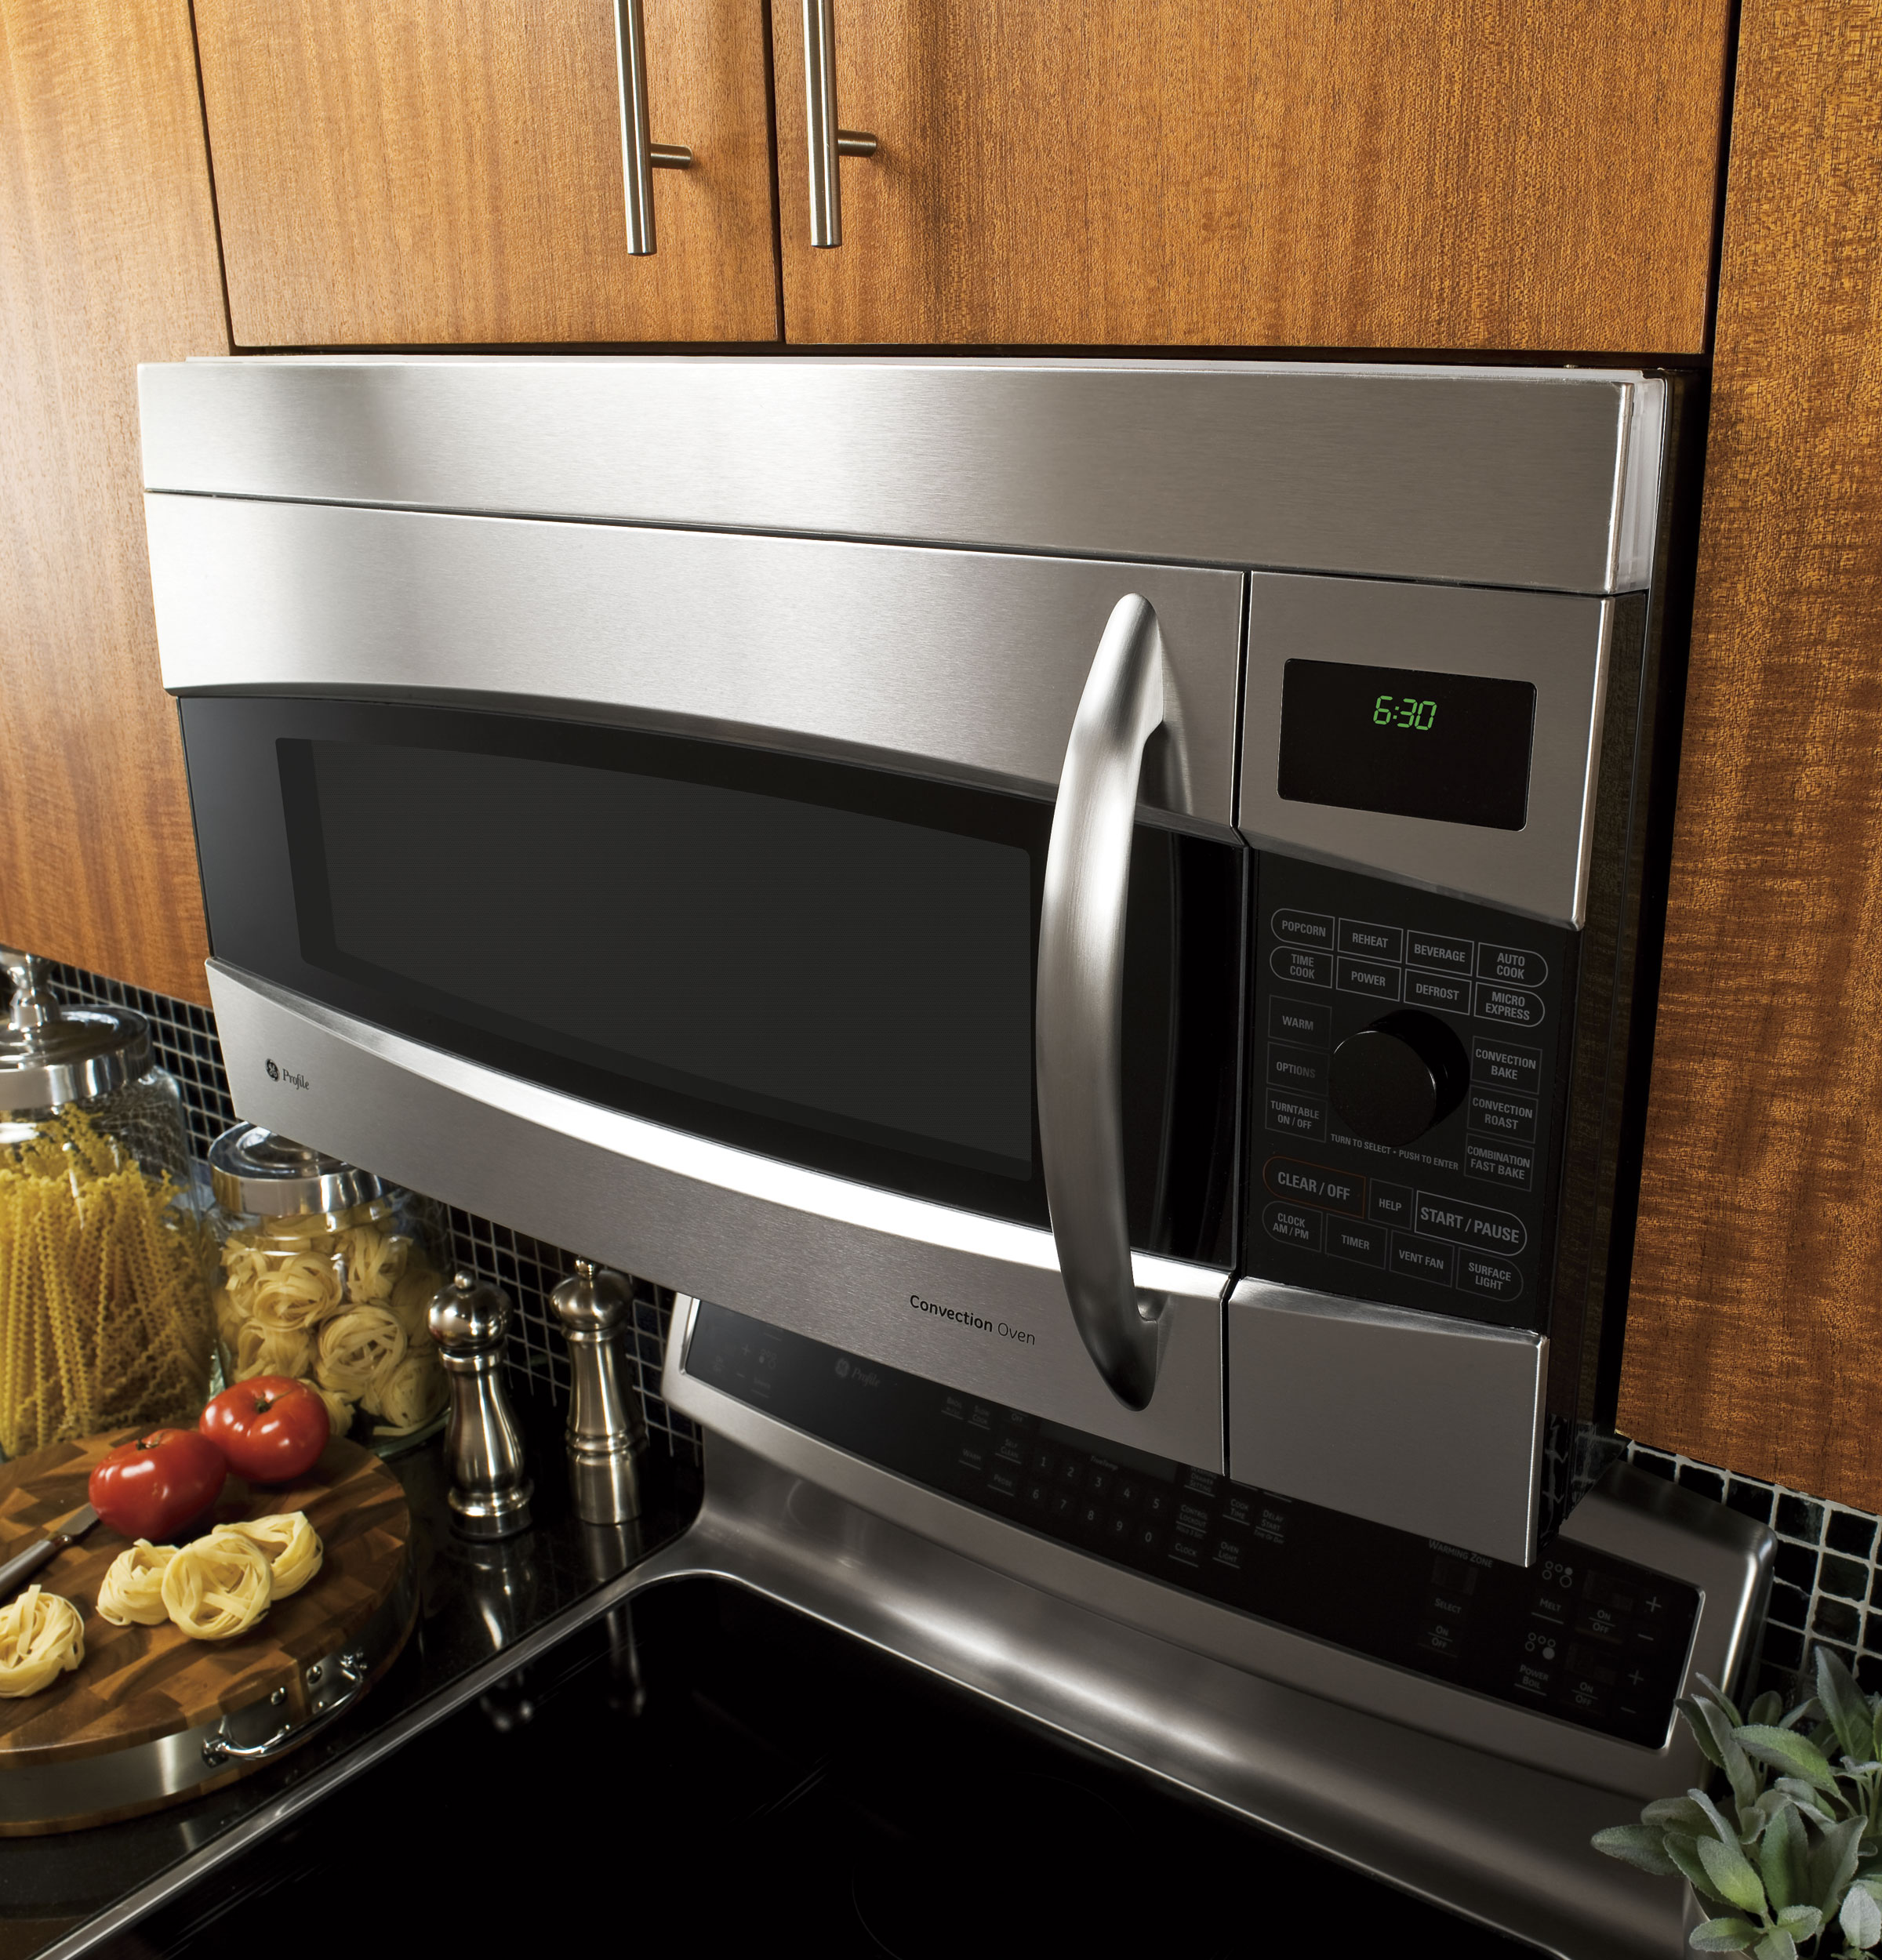 Ge Profile Convection Oven Microwave Bestmicrowave